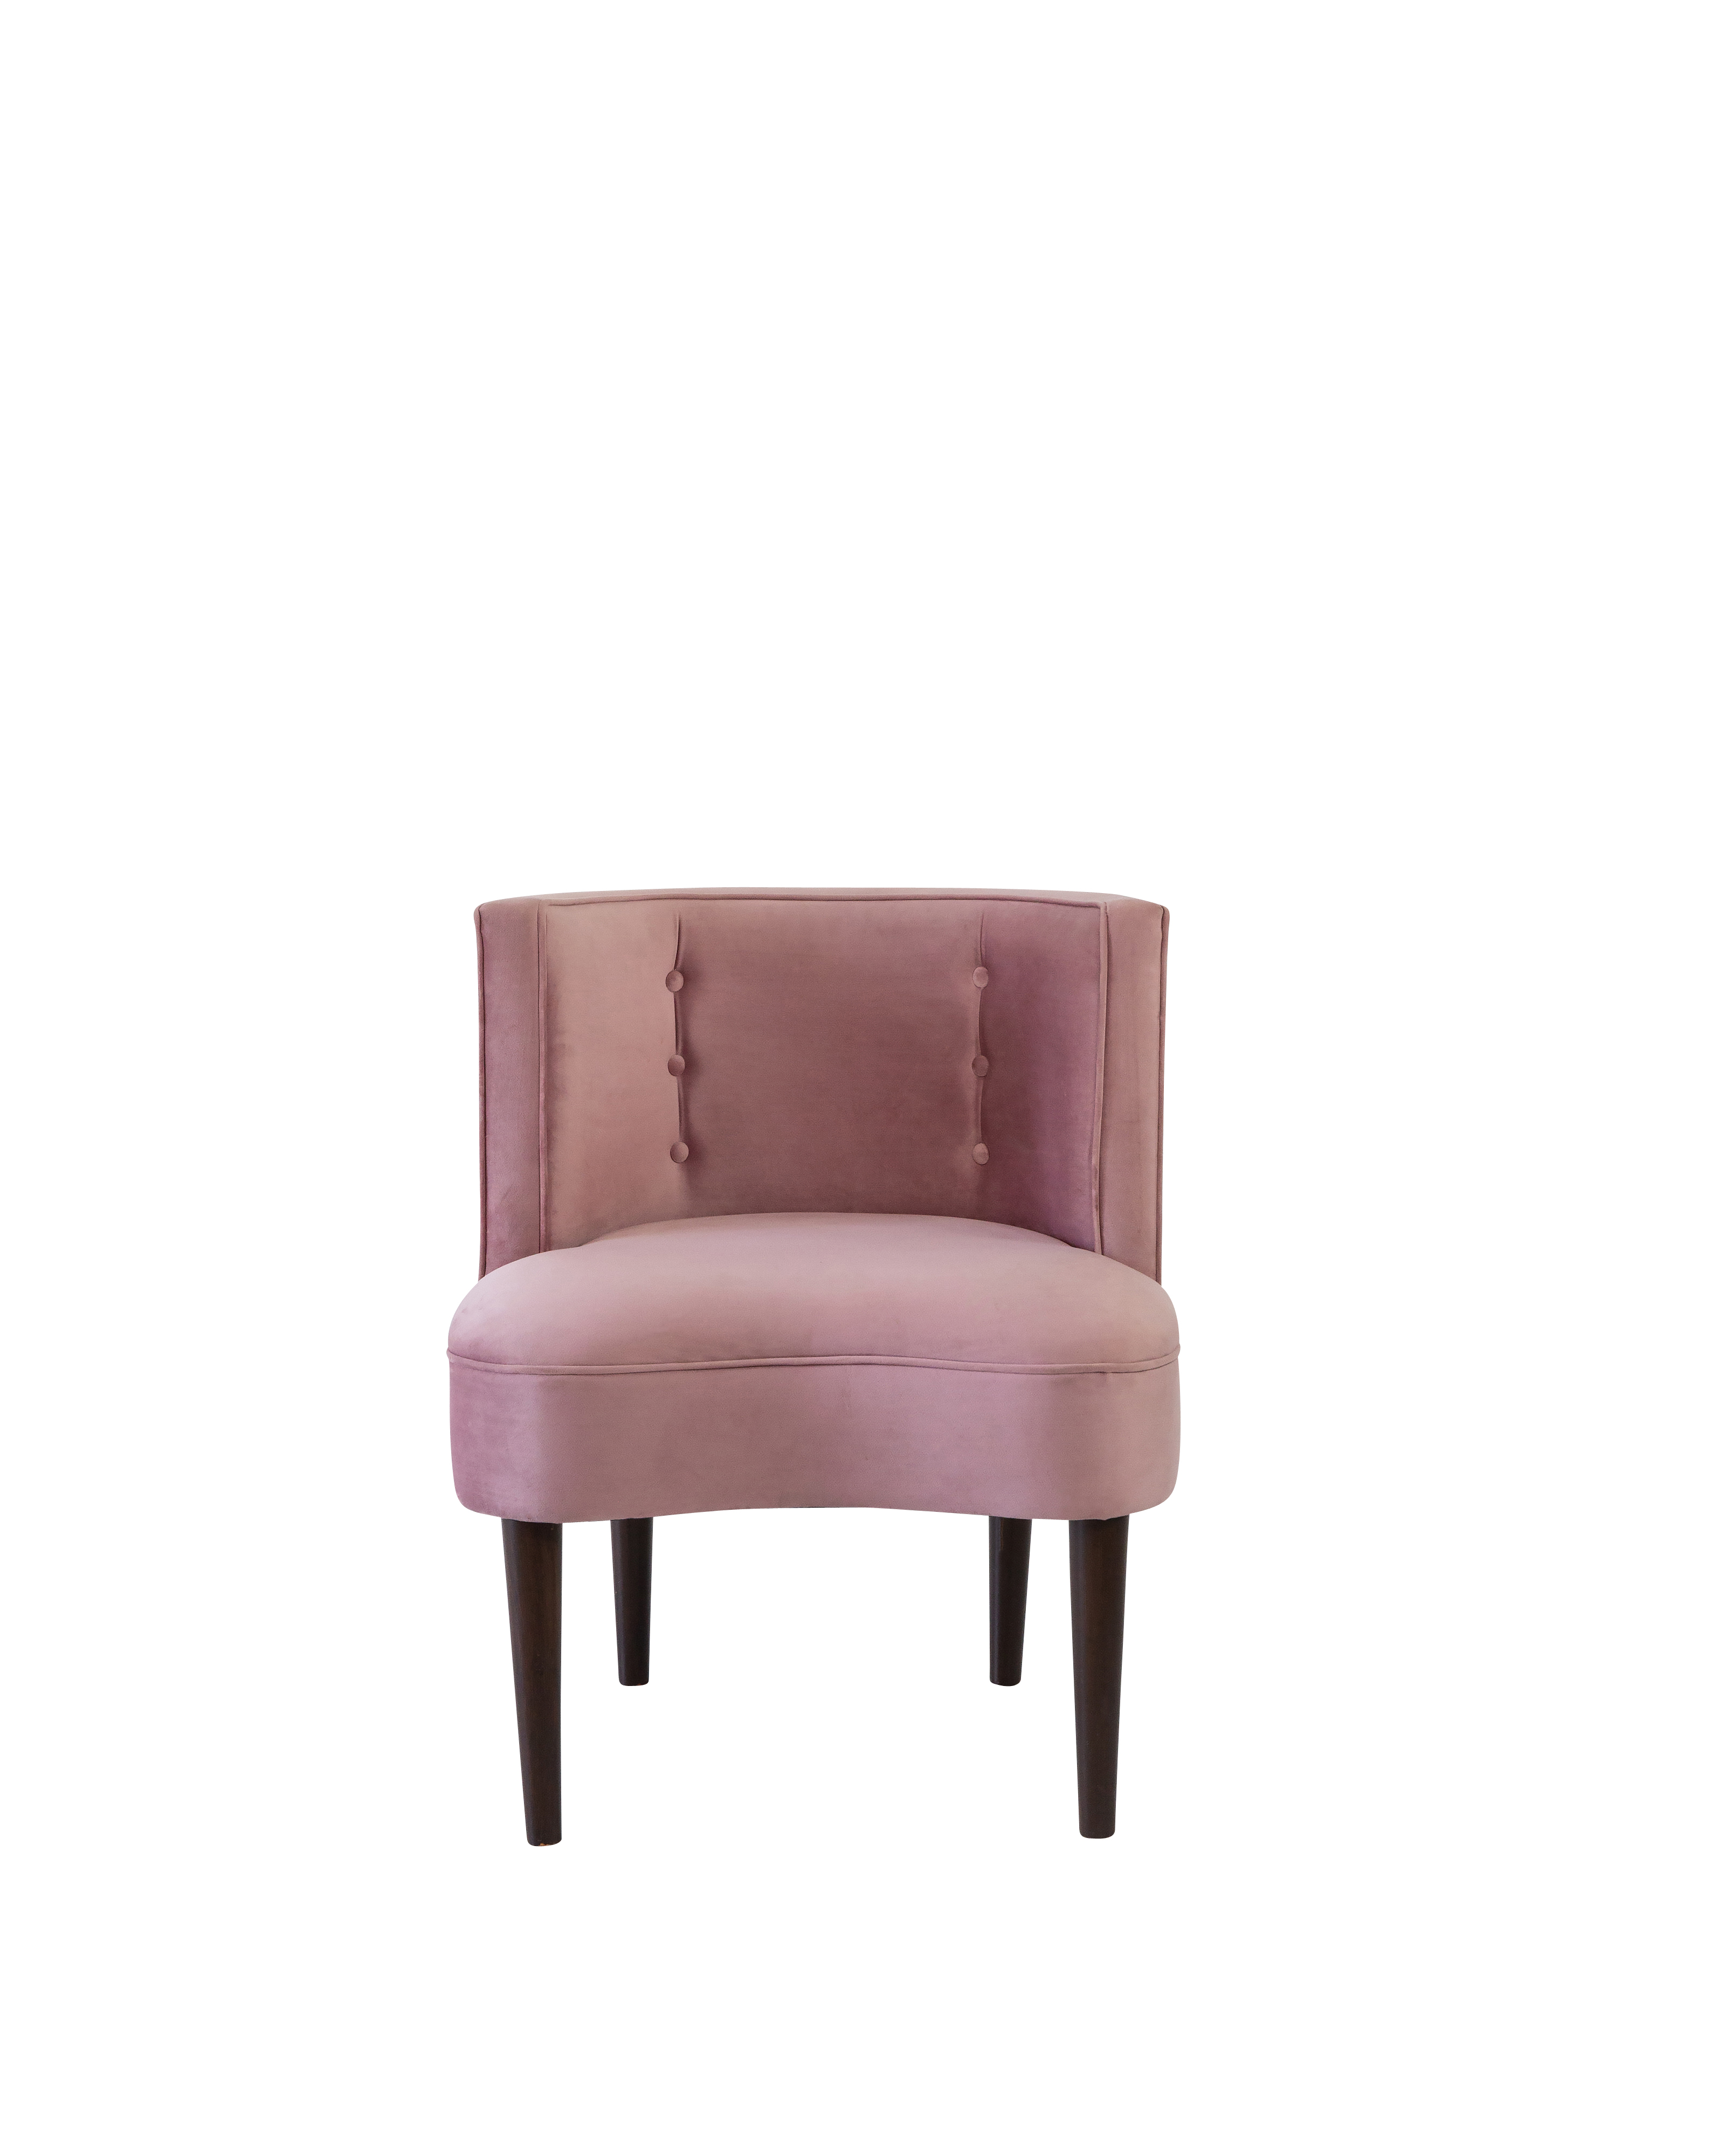 Erika Chair- Dusty Rose